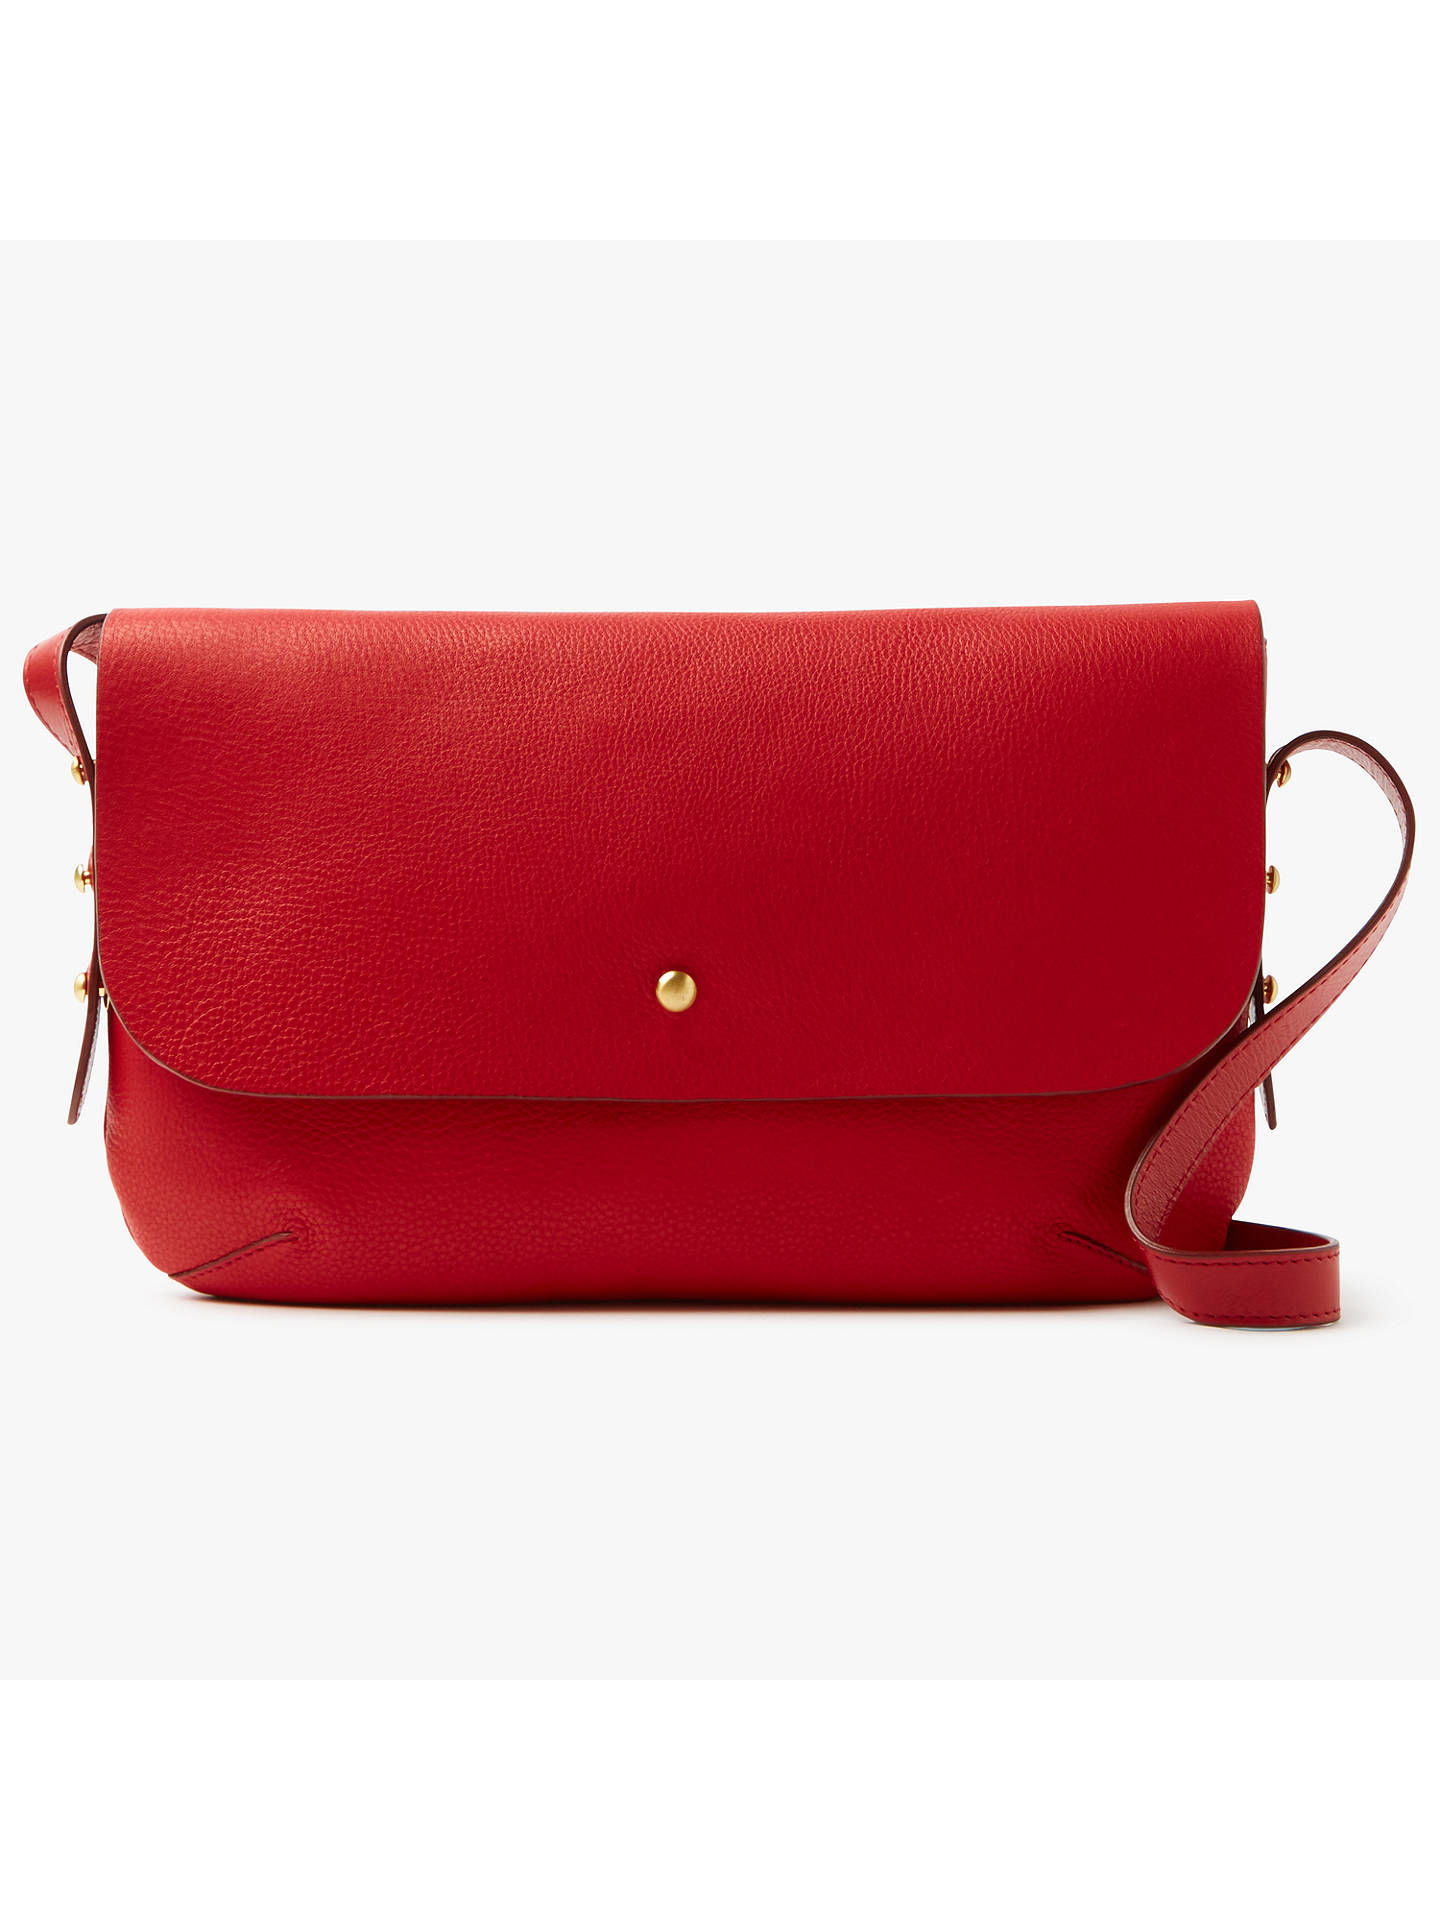 John Lewis Partners Rhea Leather Shoulder Bag Red Online At Johnlewis